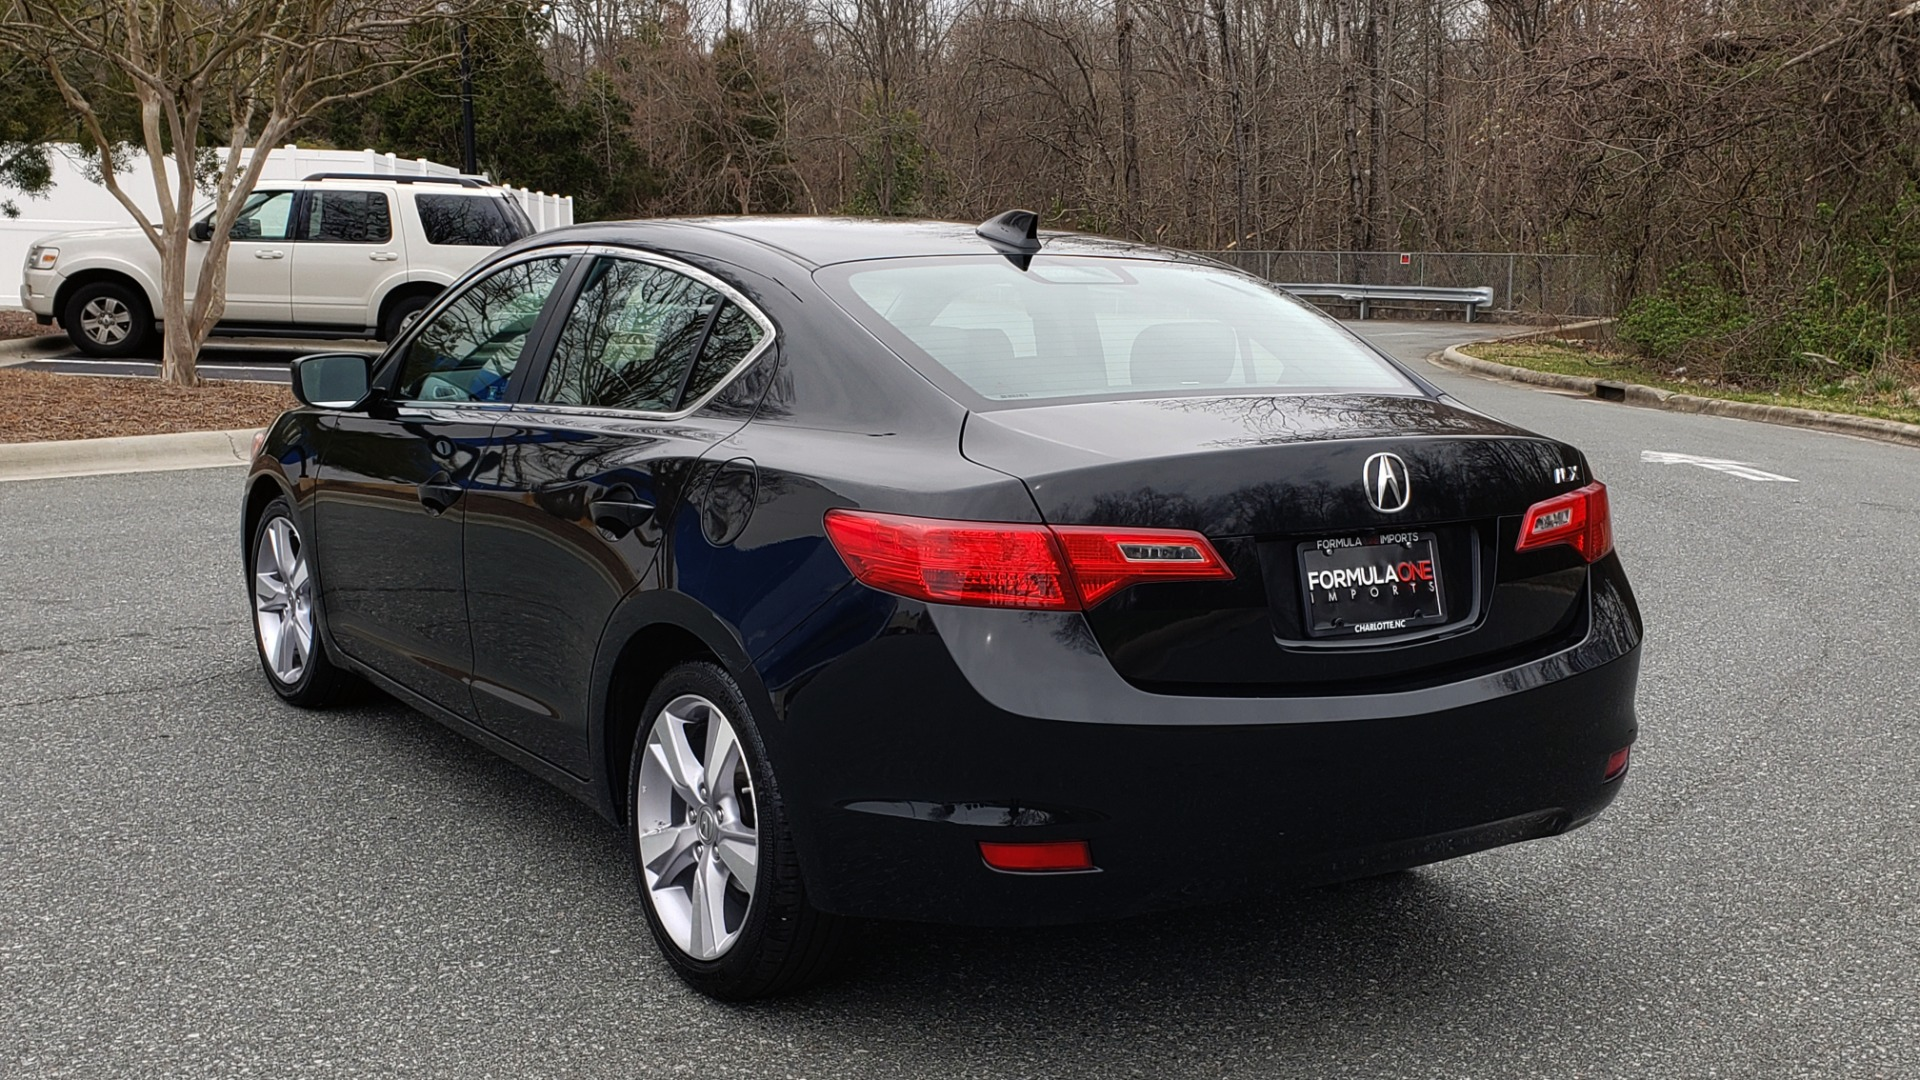 Used 2013 Acura ILX TECH PKG / SUNROOF / NAV / DUAL-ZONE A/C / REARVIEW for sale Sold at Formula Imports in Charlotte NC 28227 3